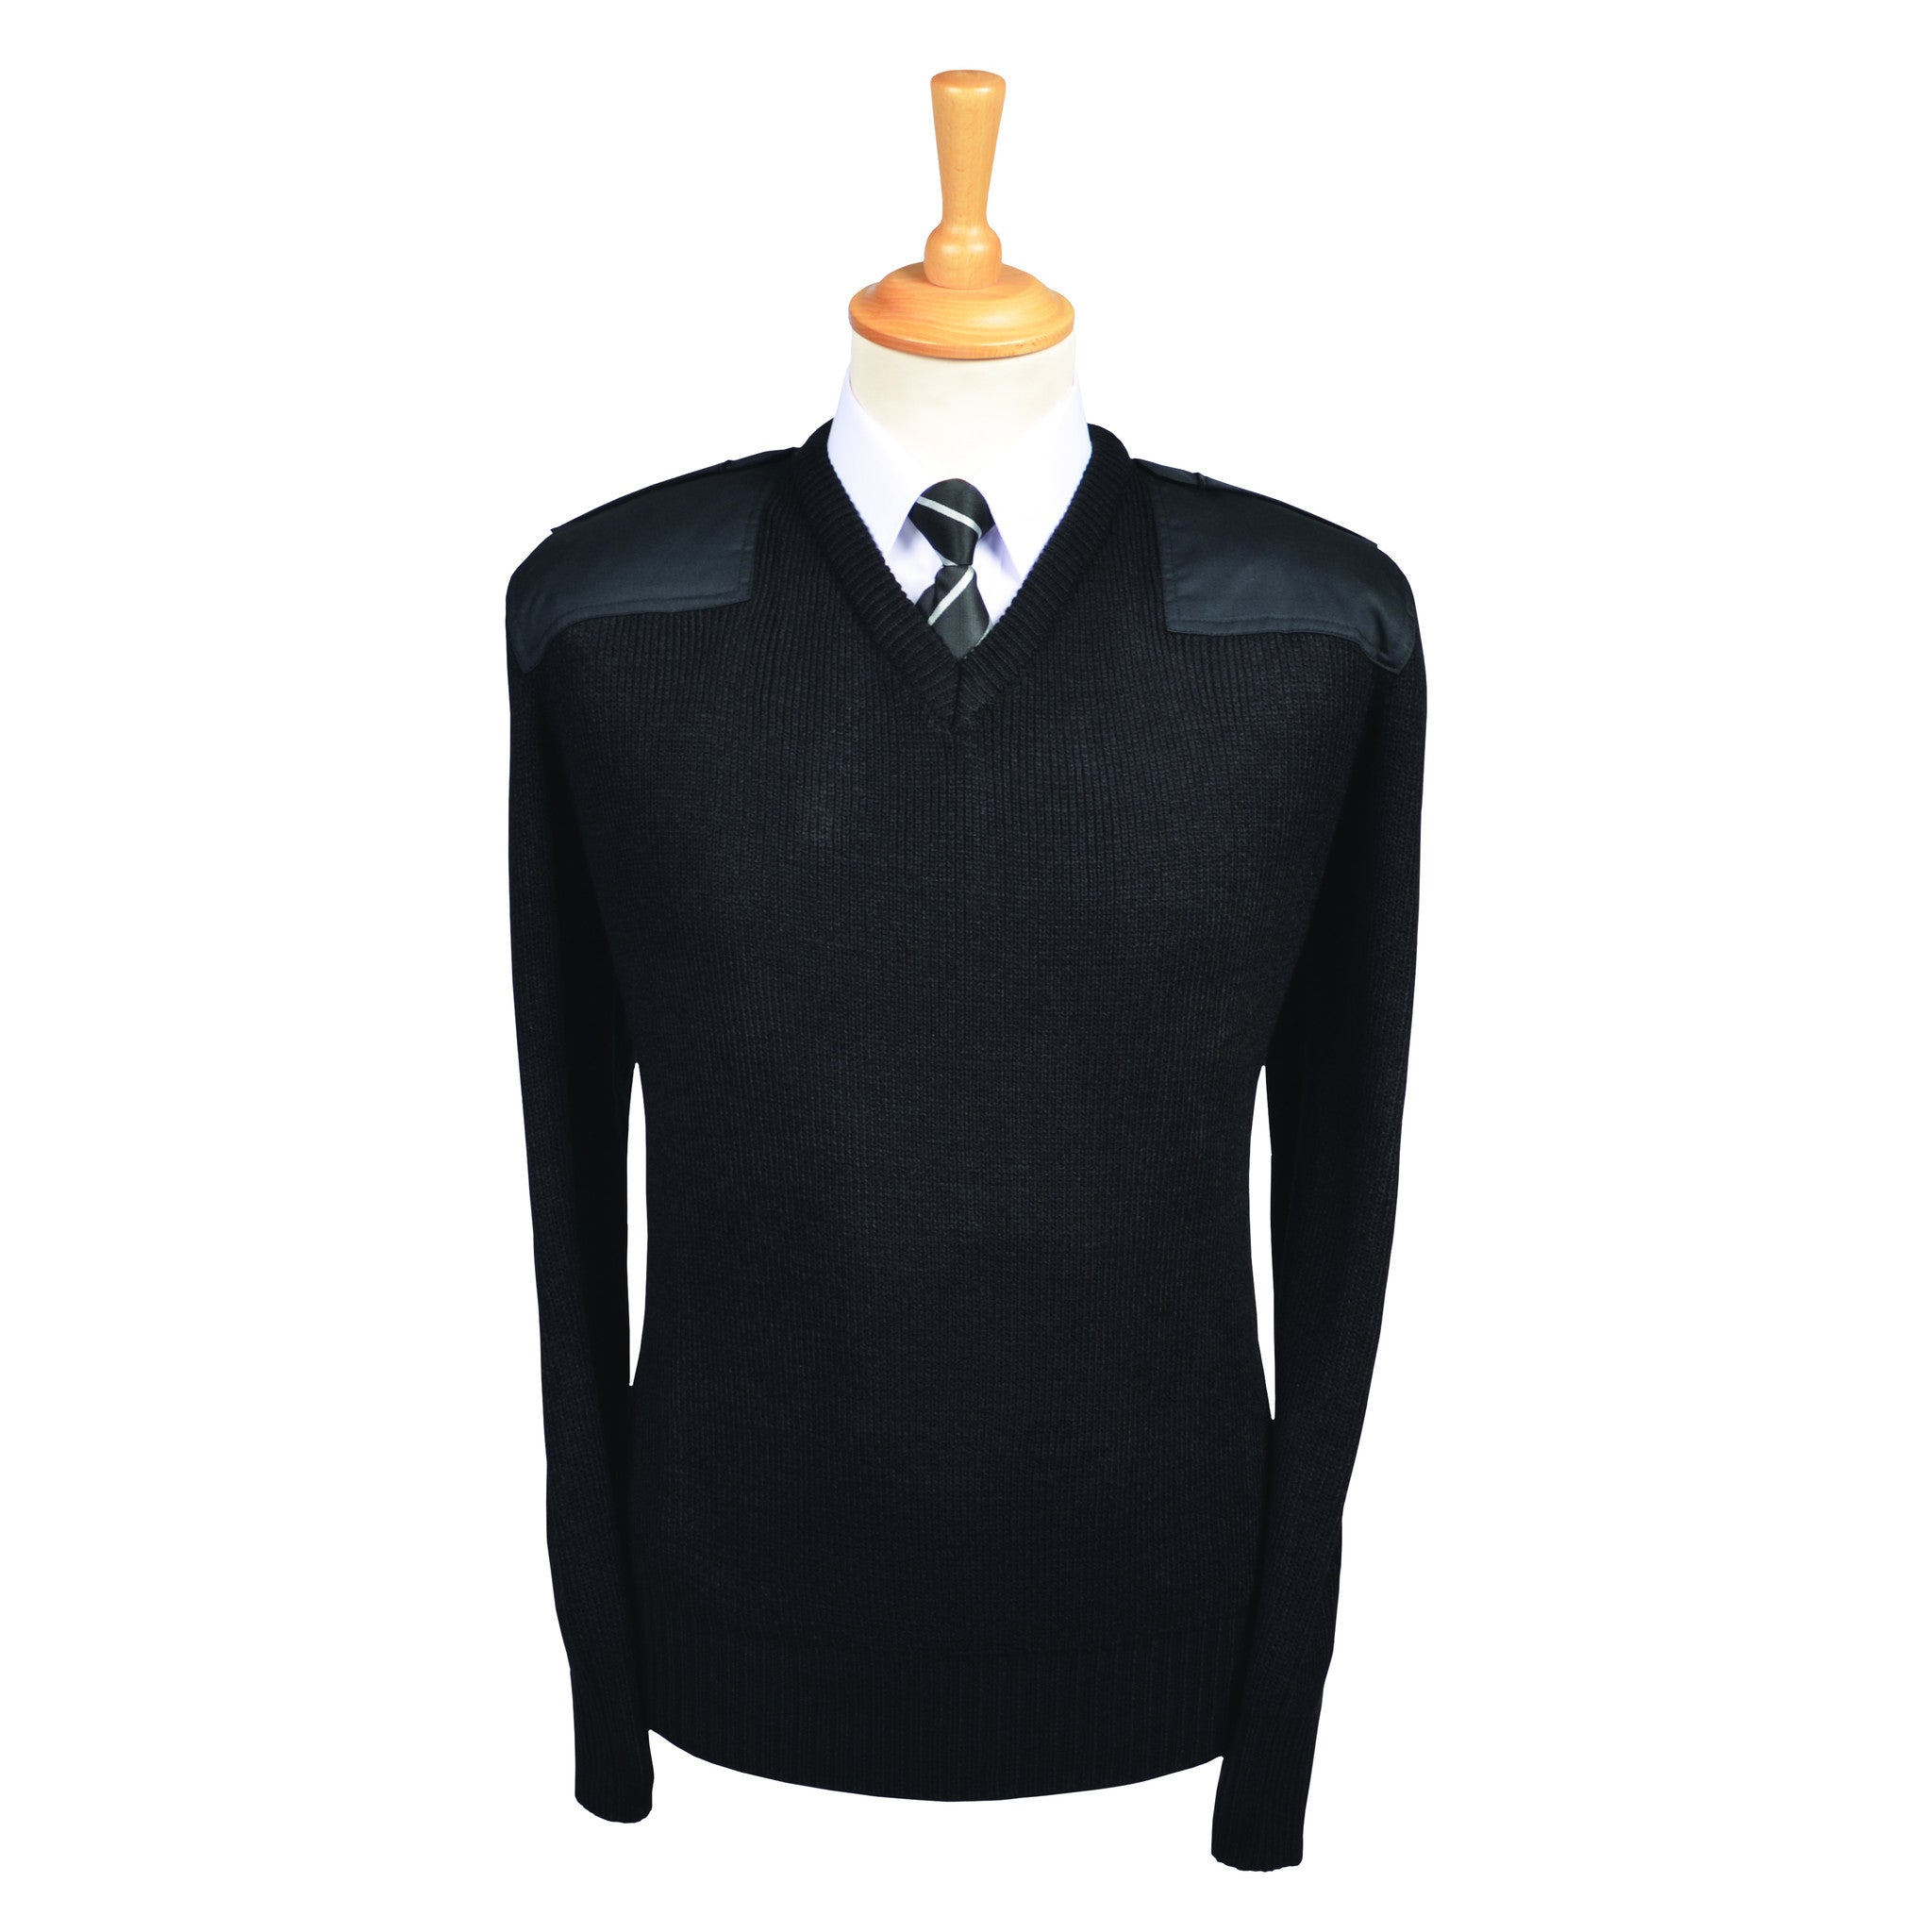 Nato Jumper - peterdrew.com  - 2